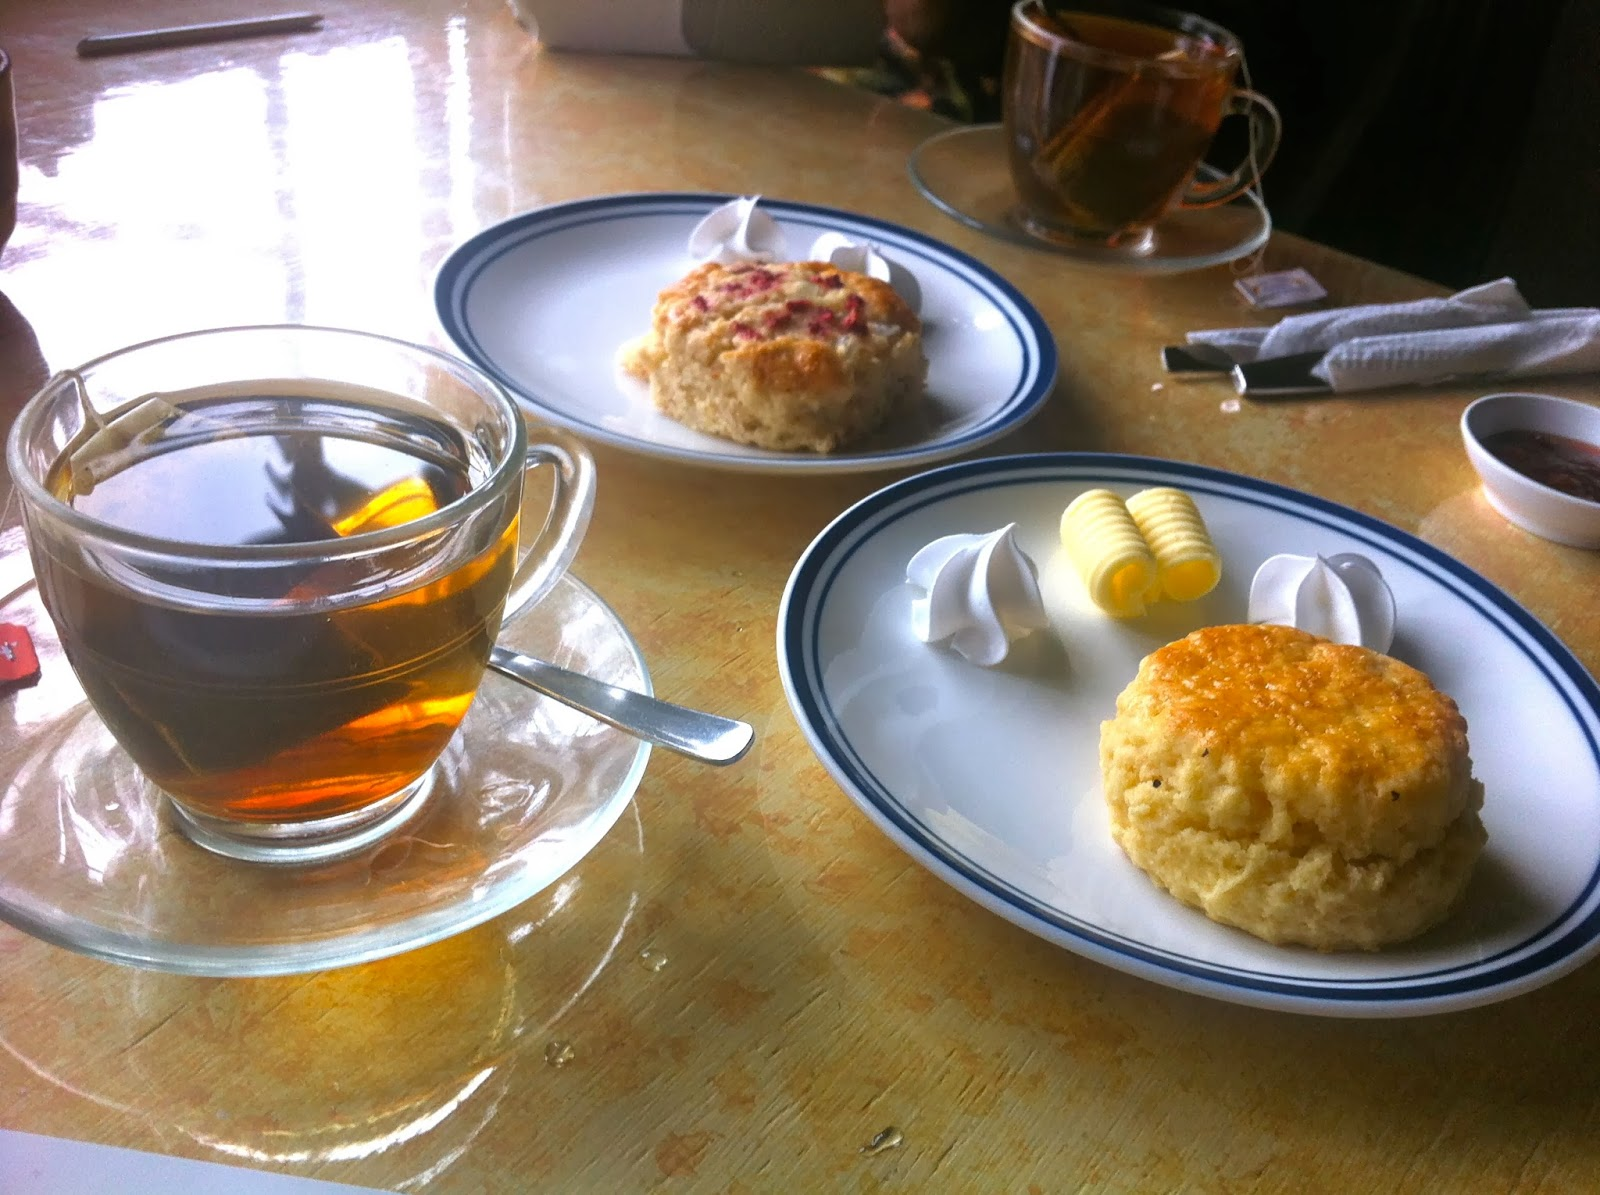 Scones and tea at the Cameron Highlands, Malaysia